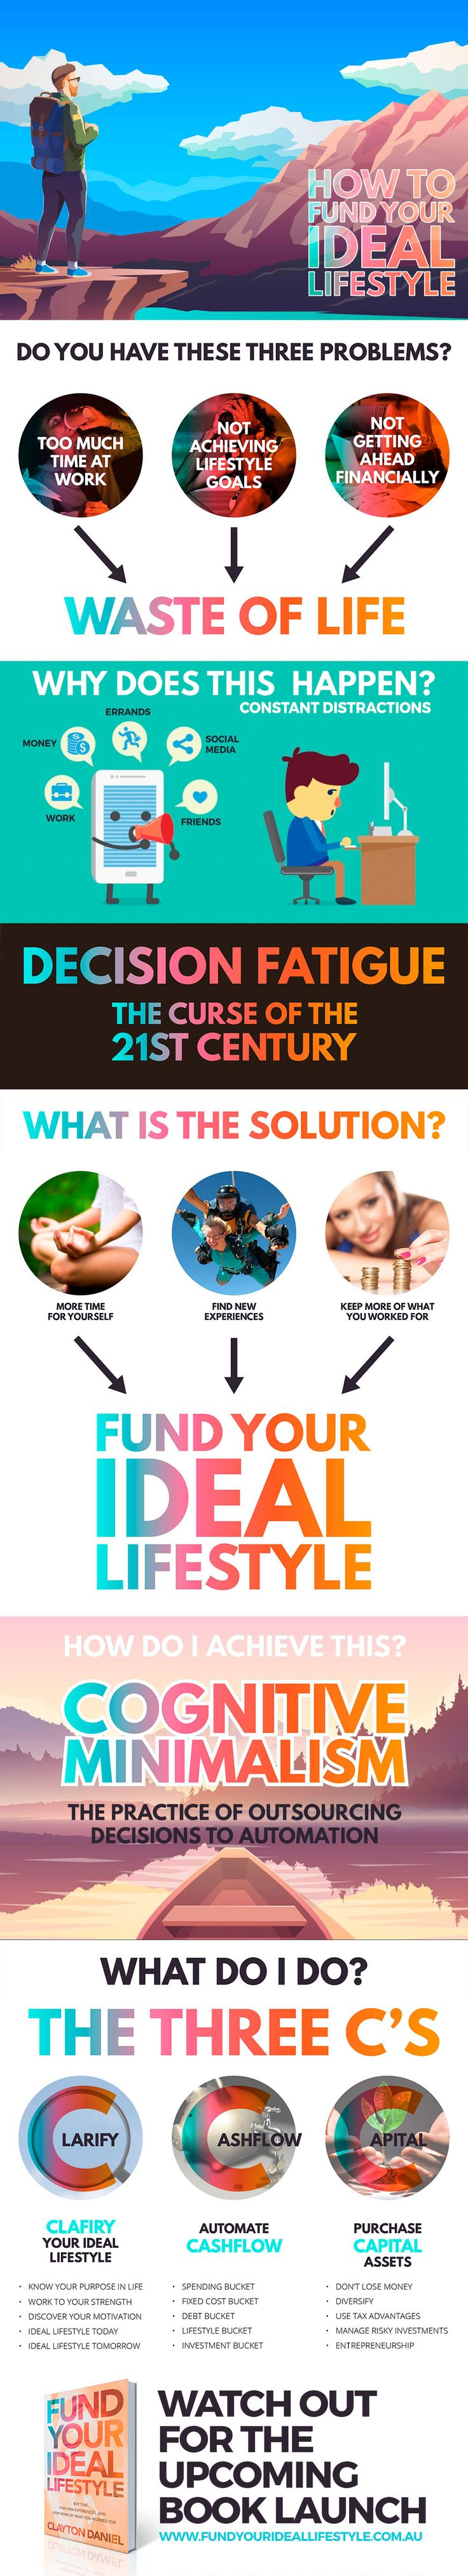 infographic Fund Your Ideal Lifestyle by Clayton Daniel. Destroy decision fatigue with cognitive minimalism